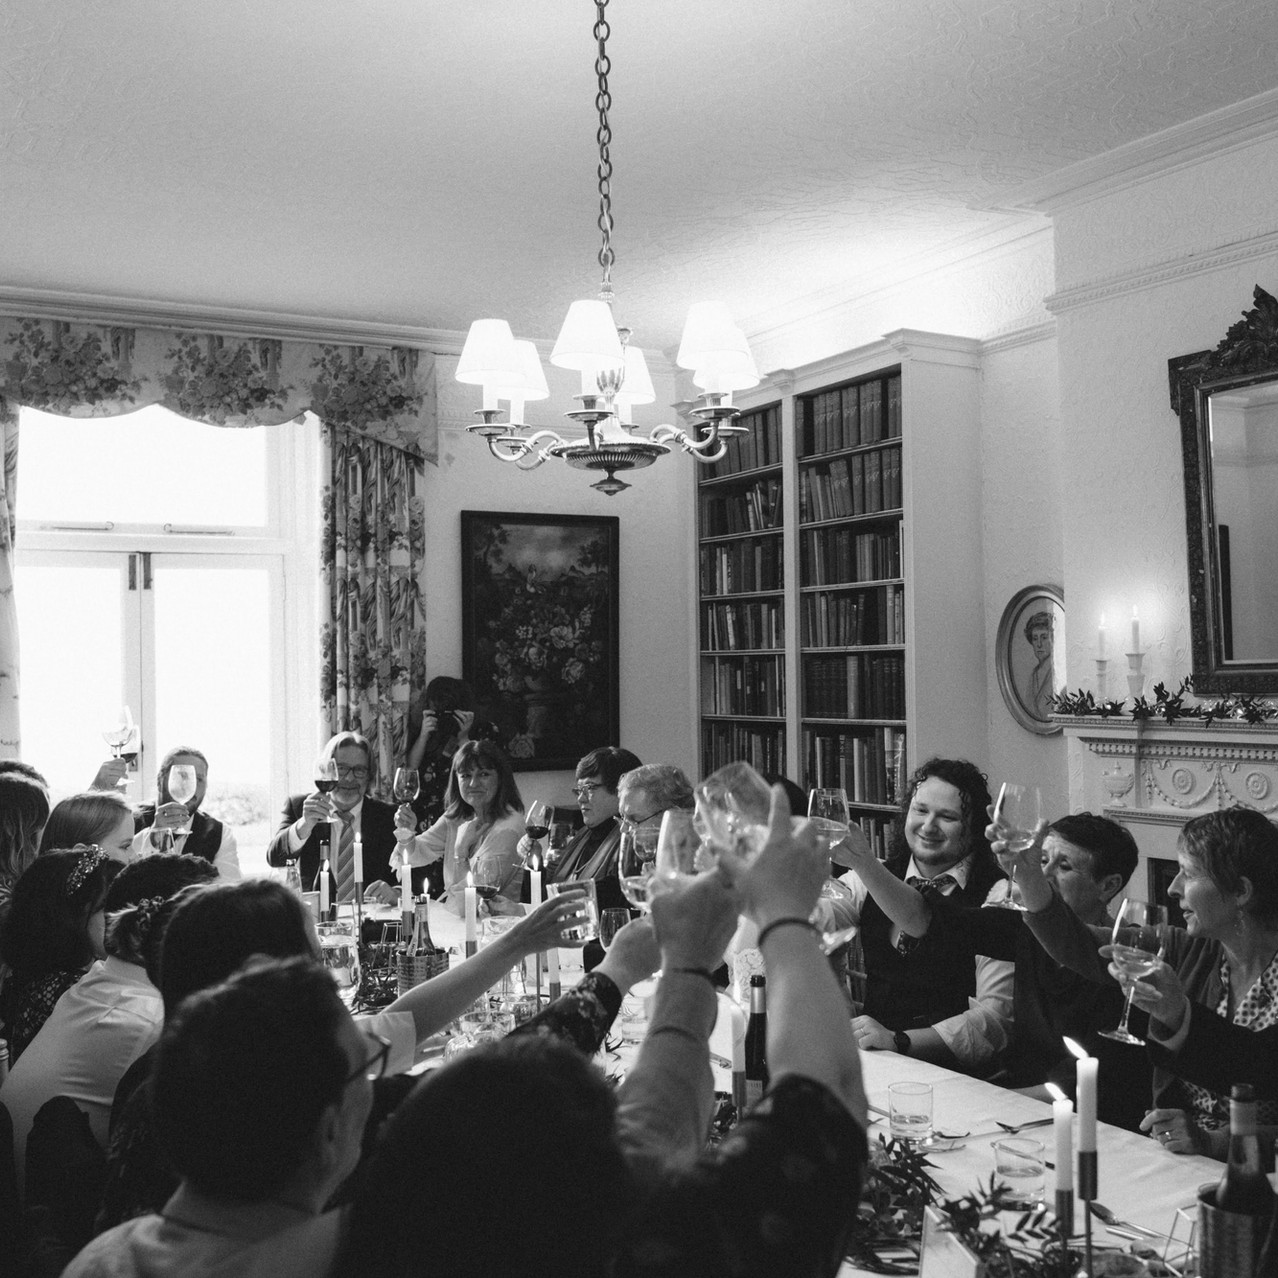 Intimate winter wedding at Porthpean House